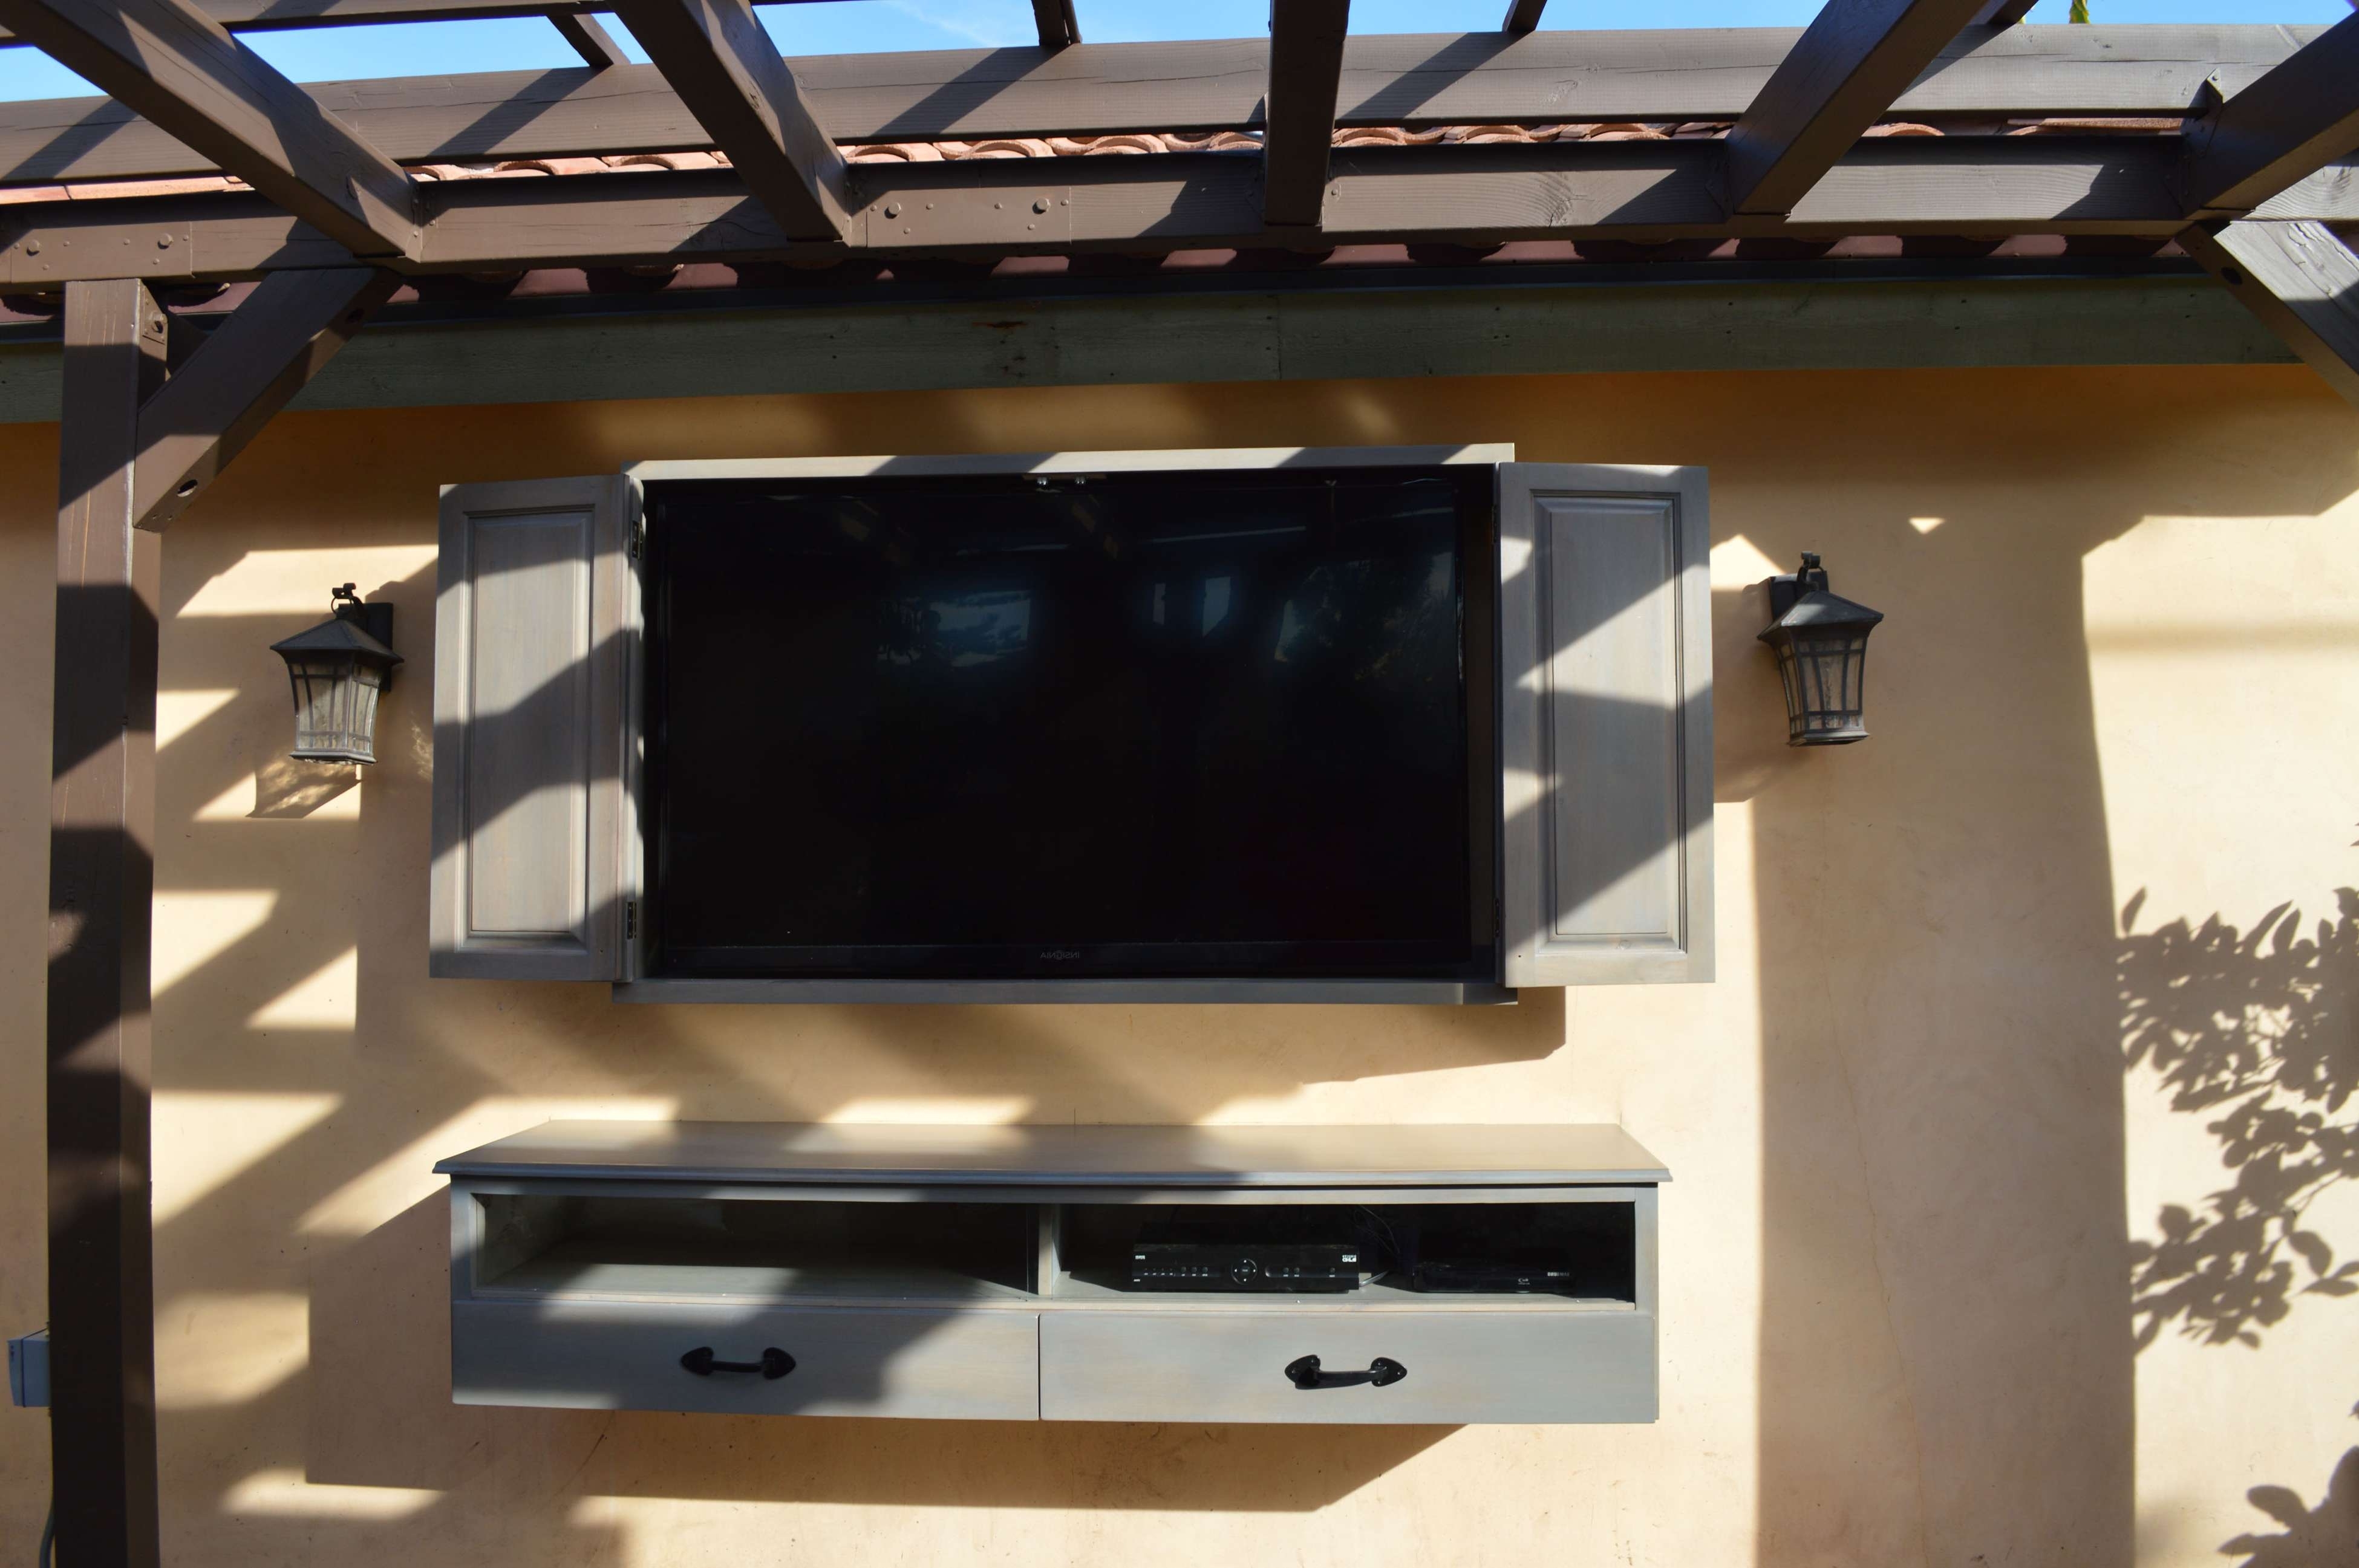 Rustic Outdoor Wall Mounted Tv Cabinets For Flat Screens With With Regard To Wall Mounted Tv Cabinets With Doors (View 7 of 20)